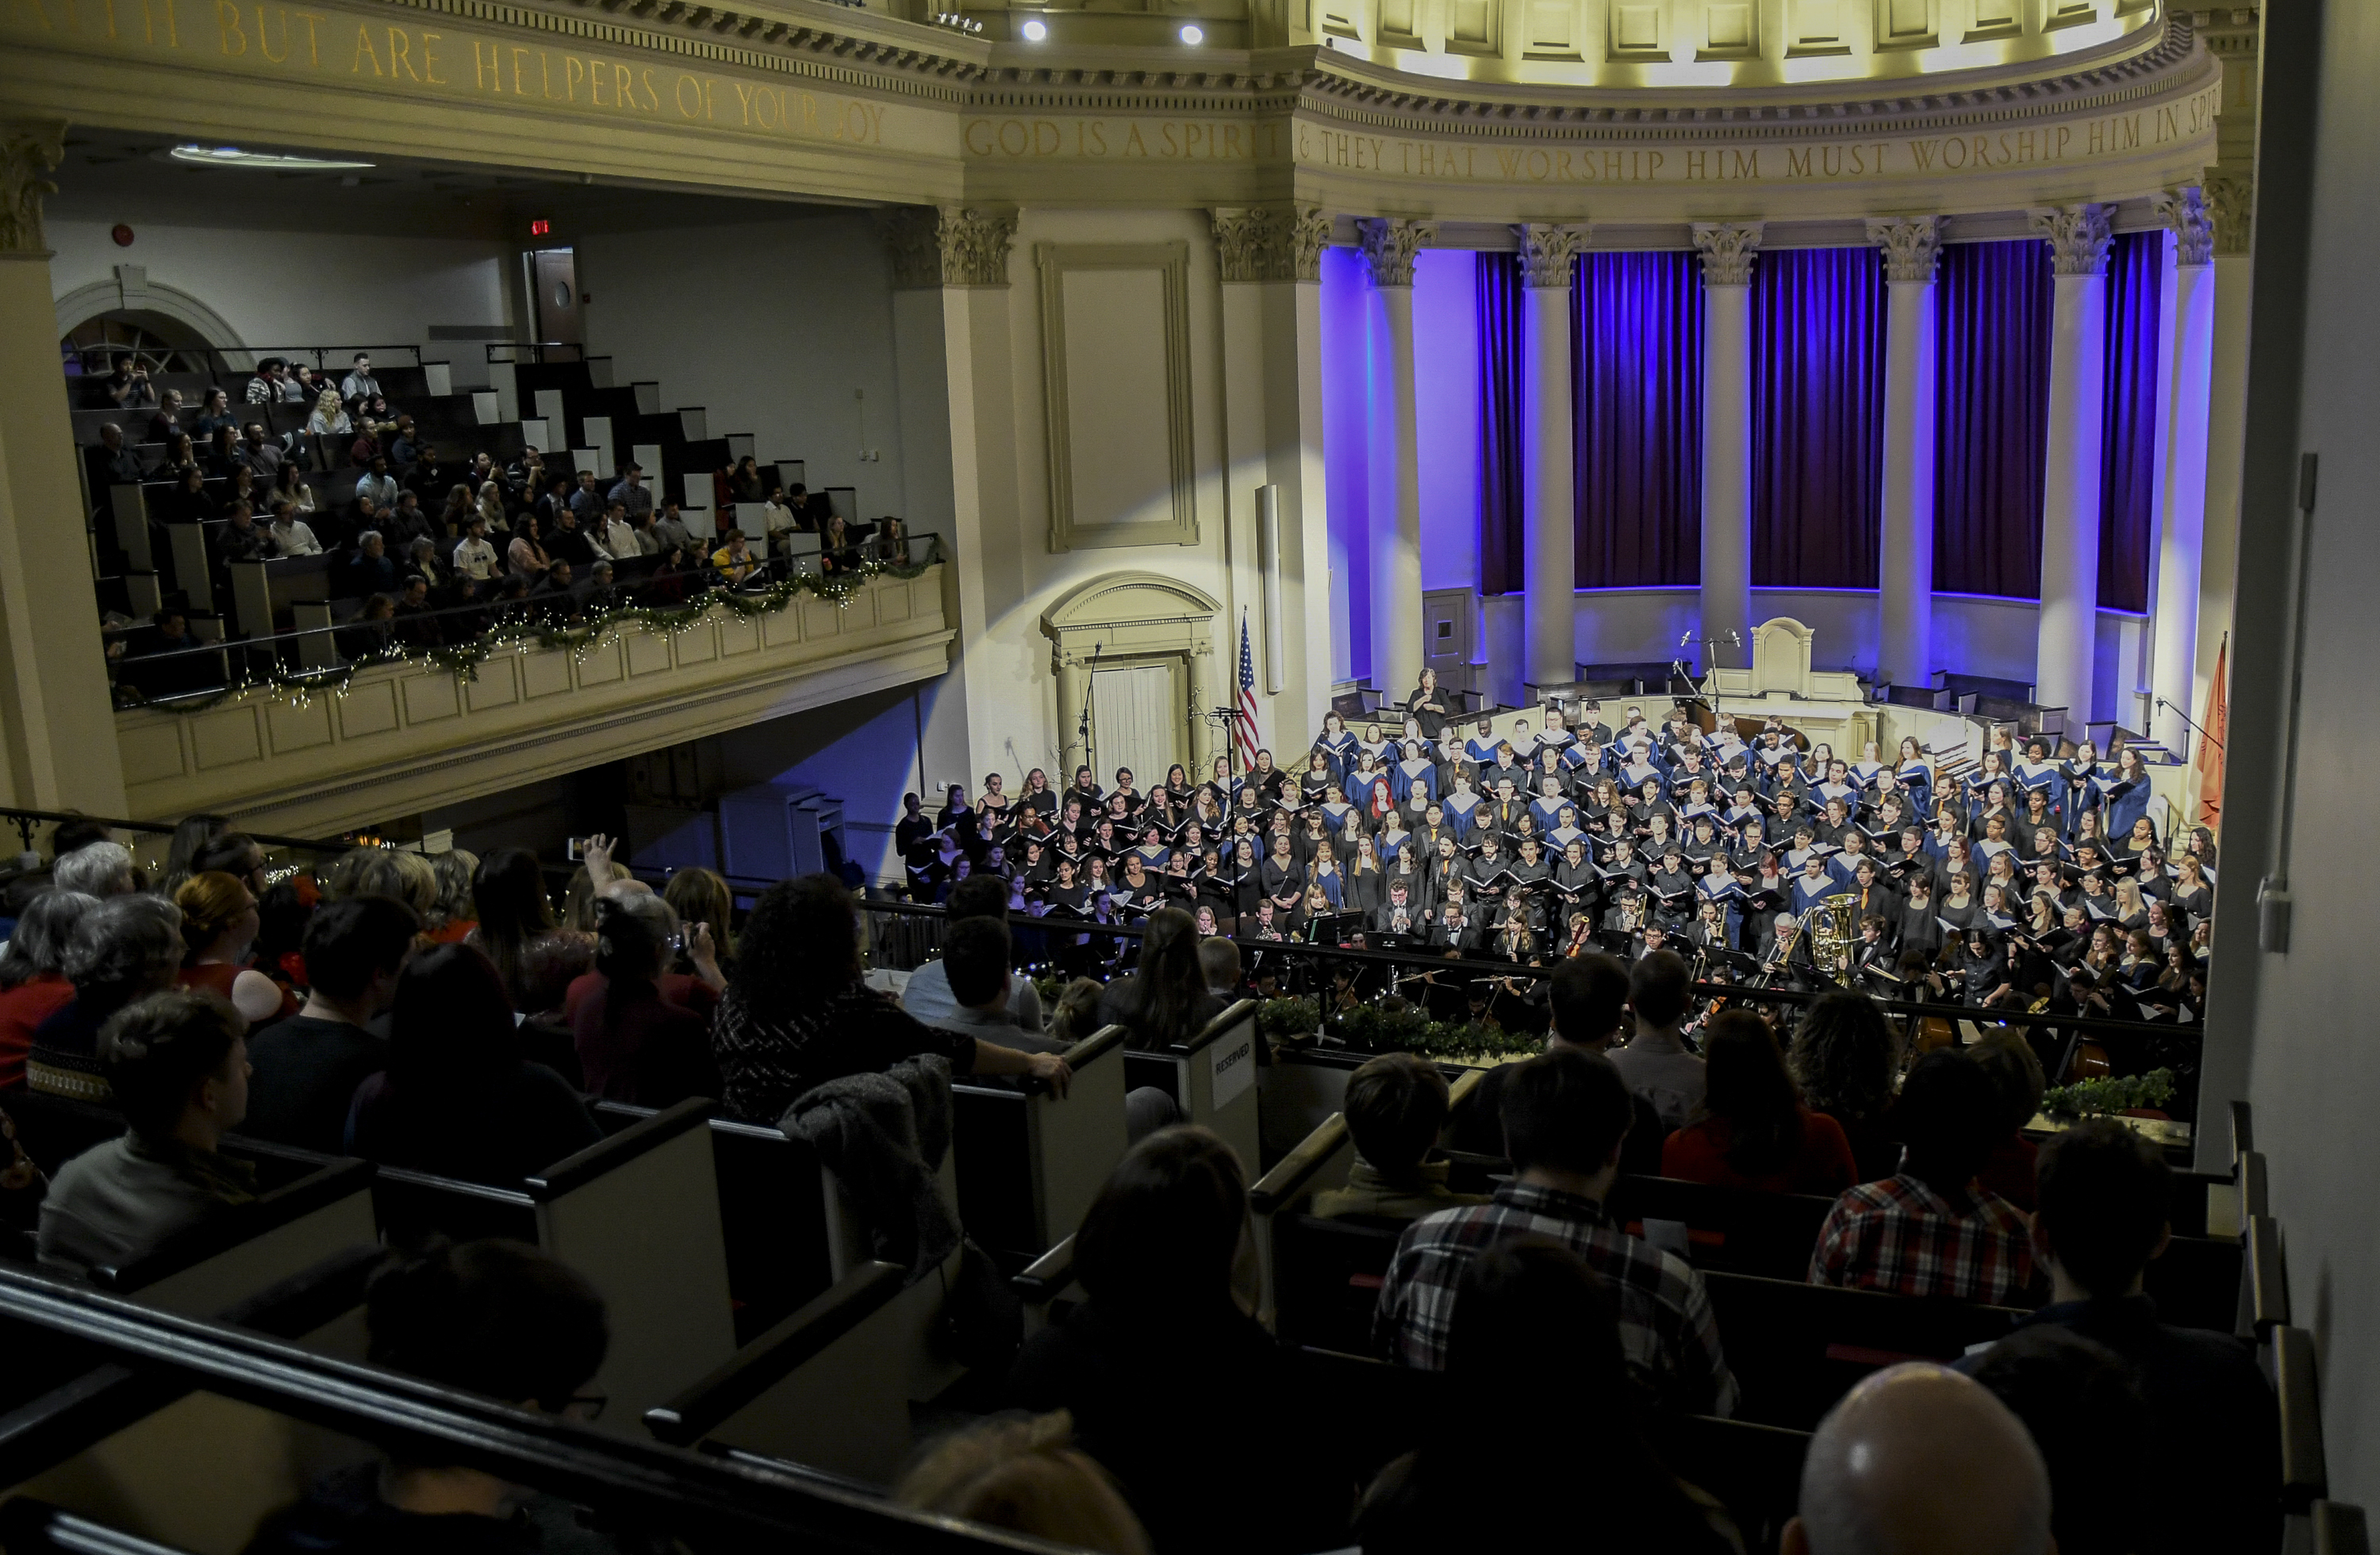 Holiday at Hendricks concert at Syracuse University on Dec. 8, 2019